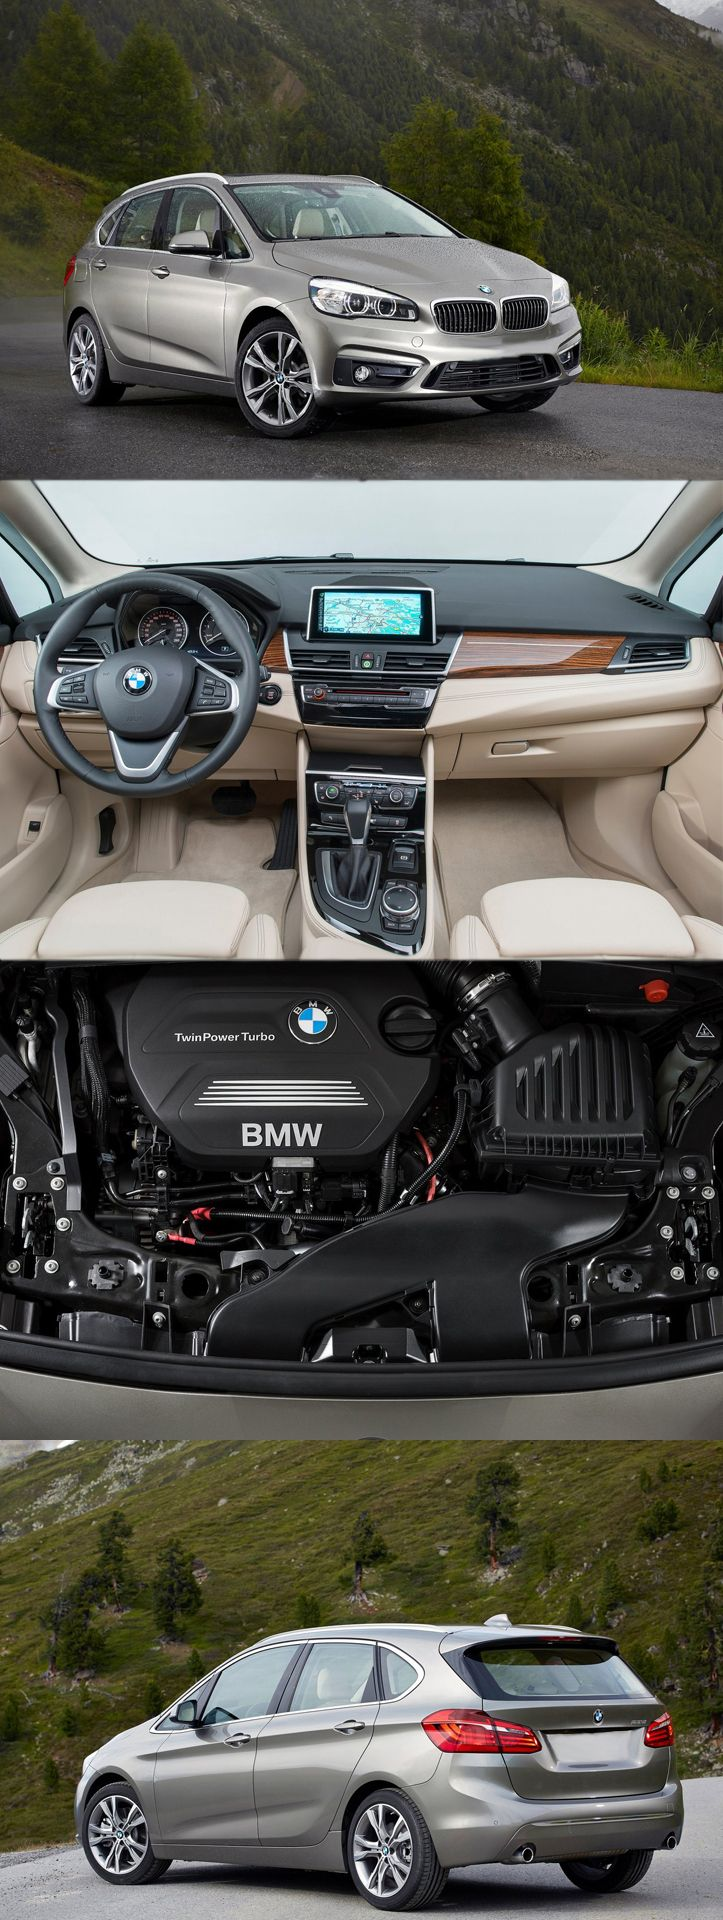 Why you should buy #BMW 218i Active Tourer Engine?https://www.amazon.co.uk/Baby-Car-Mirror-Shatterproof-Installation/dp/B06XHG6SSY